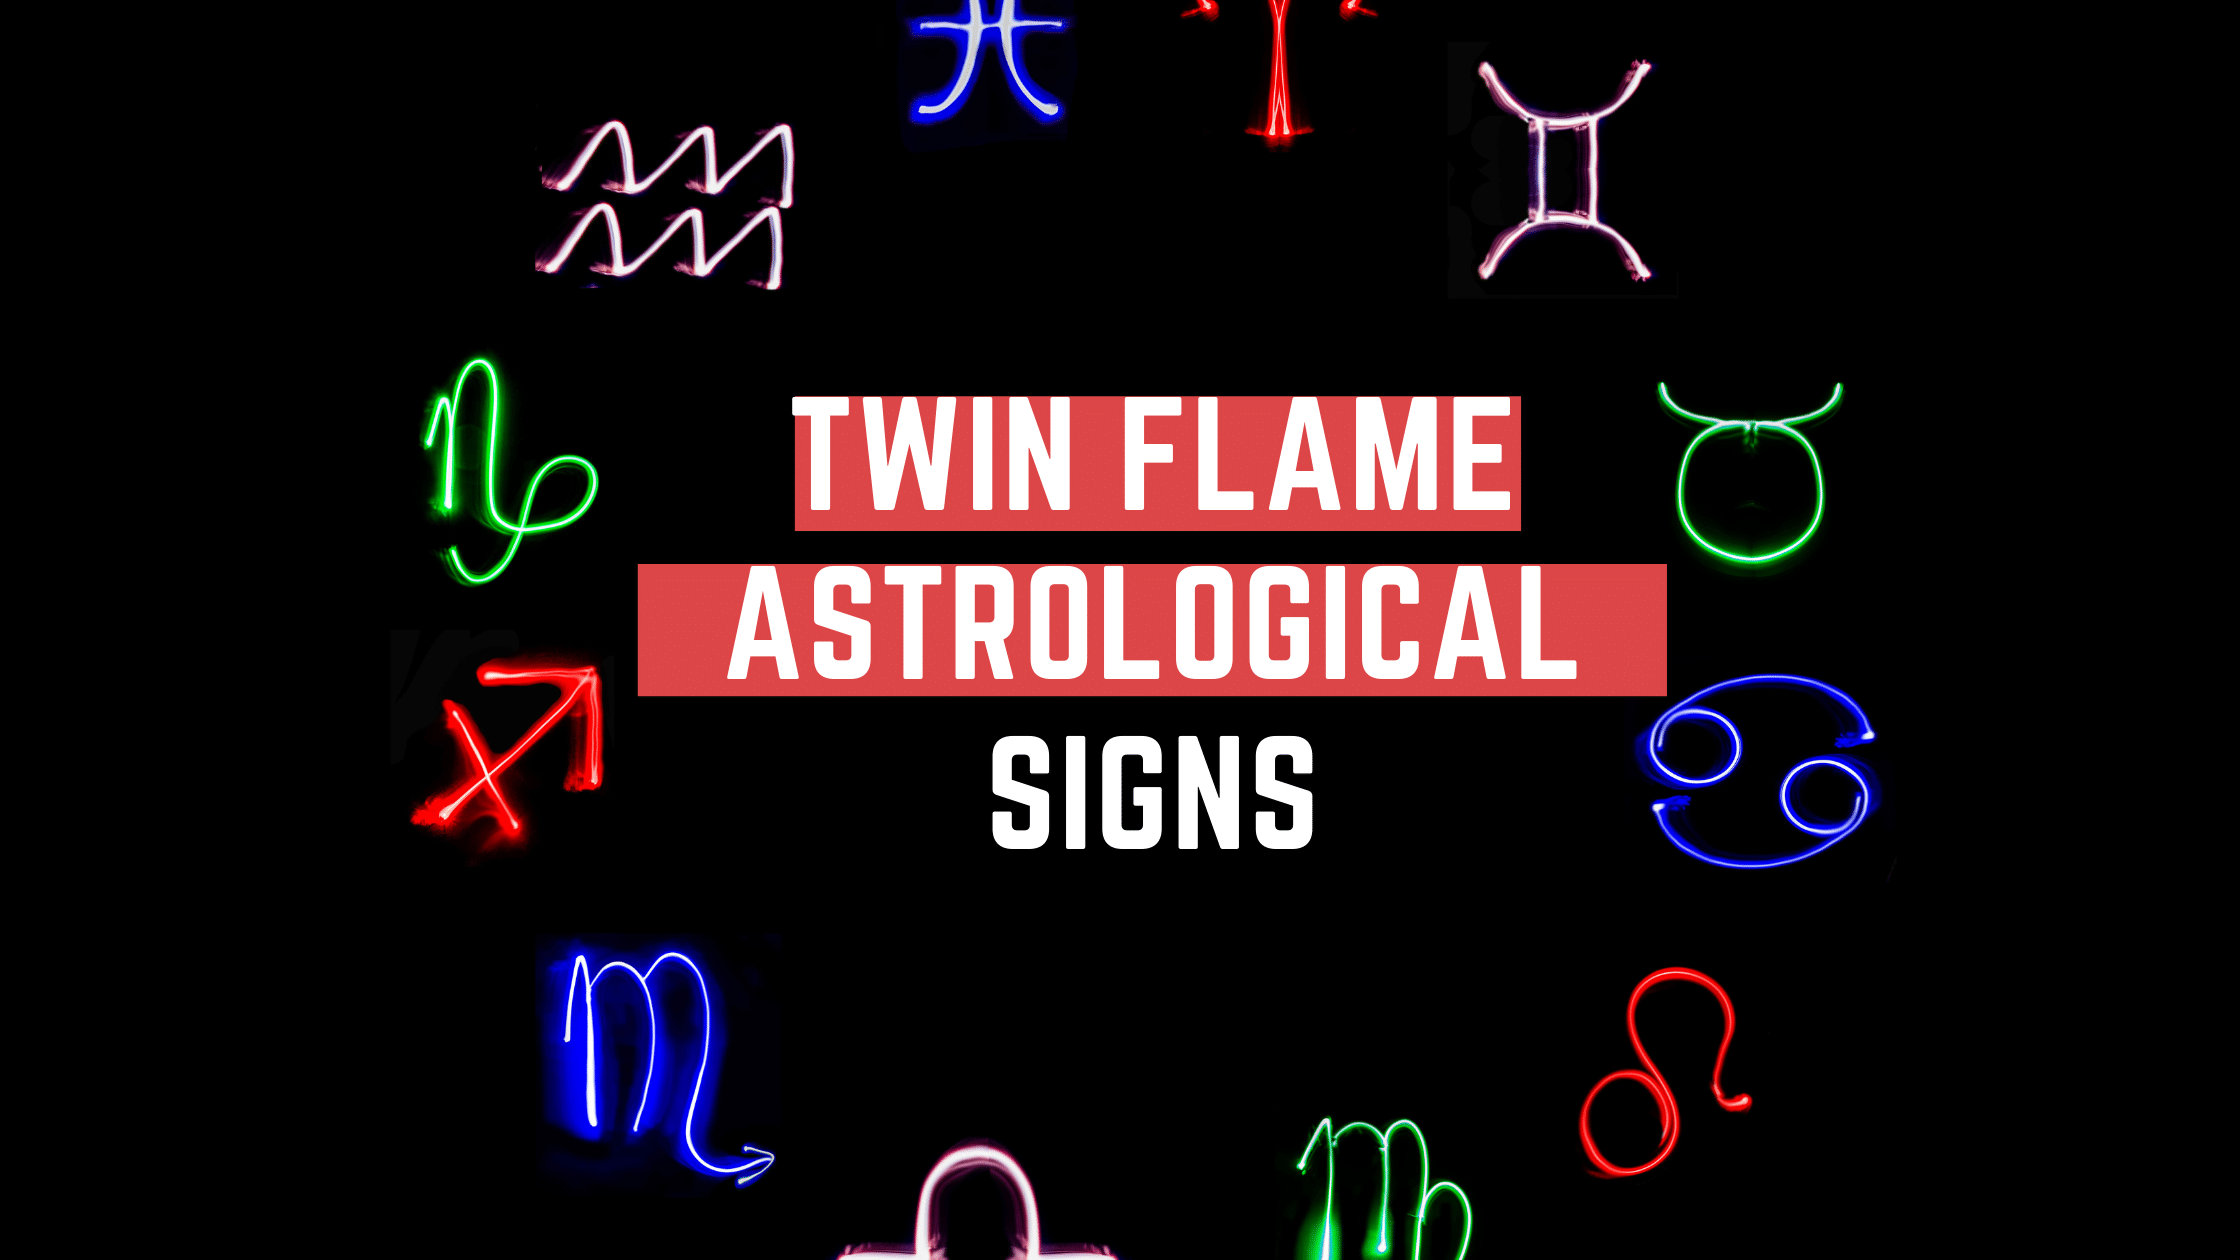 Twin Flame Astrological Signs